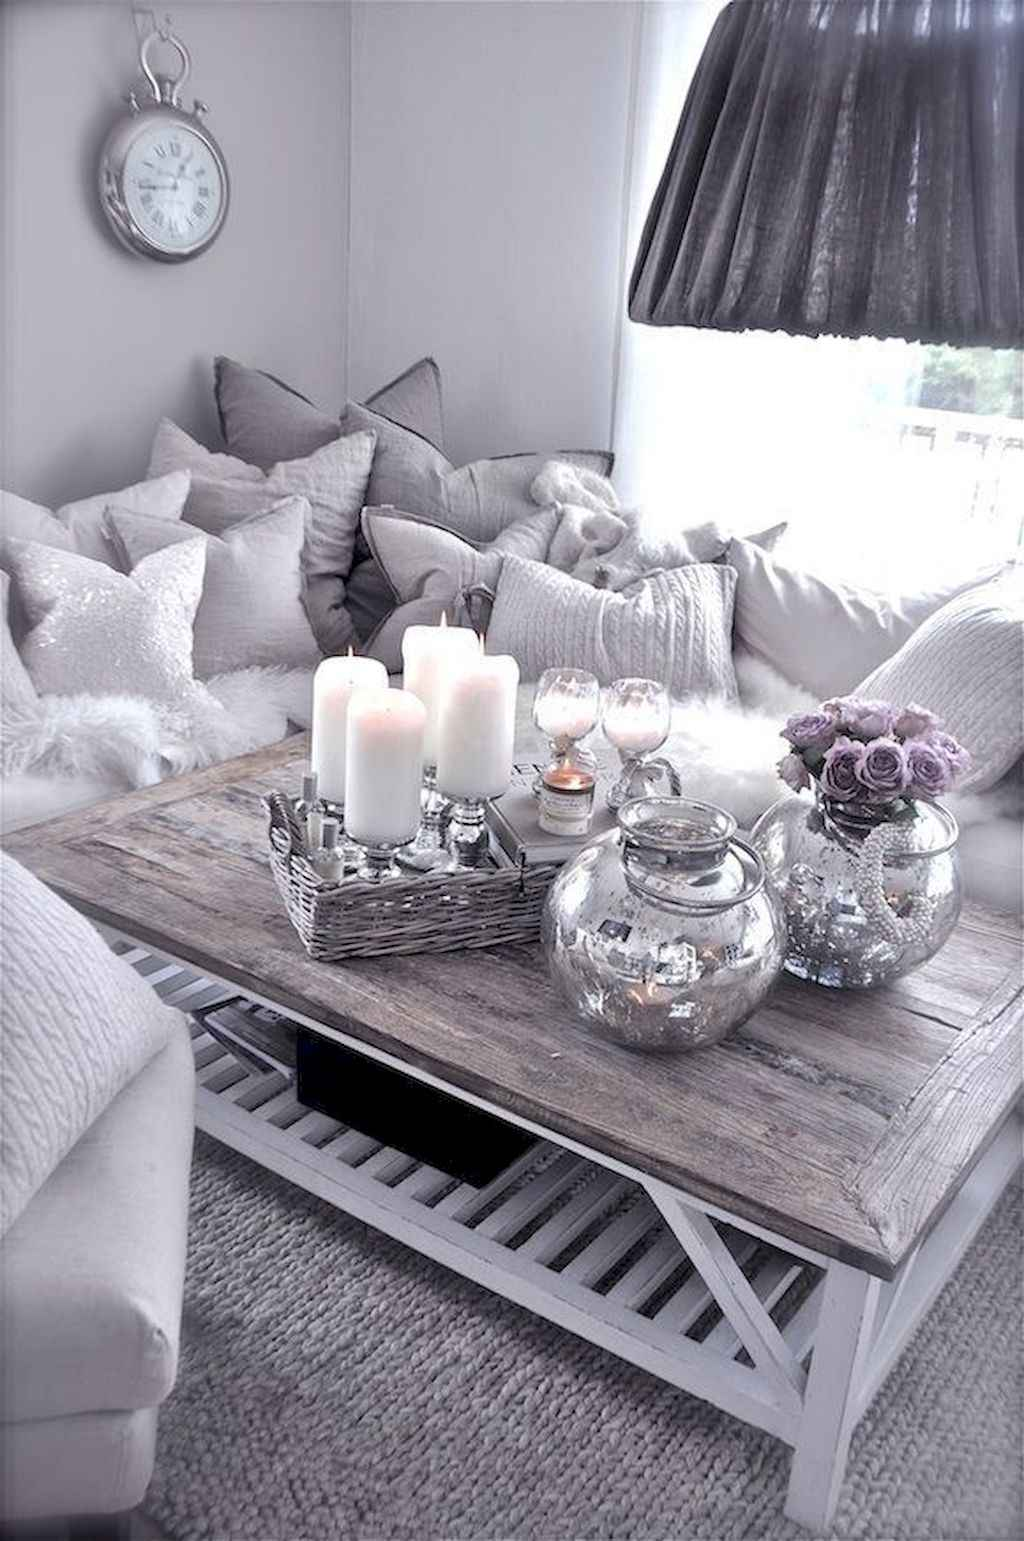 Cozy apartment decorating ideas on a budget (82)